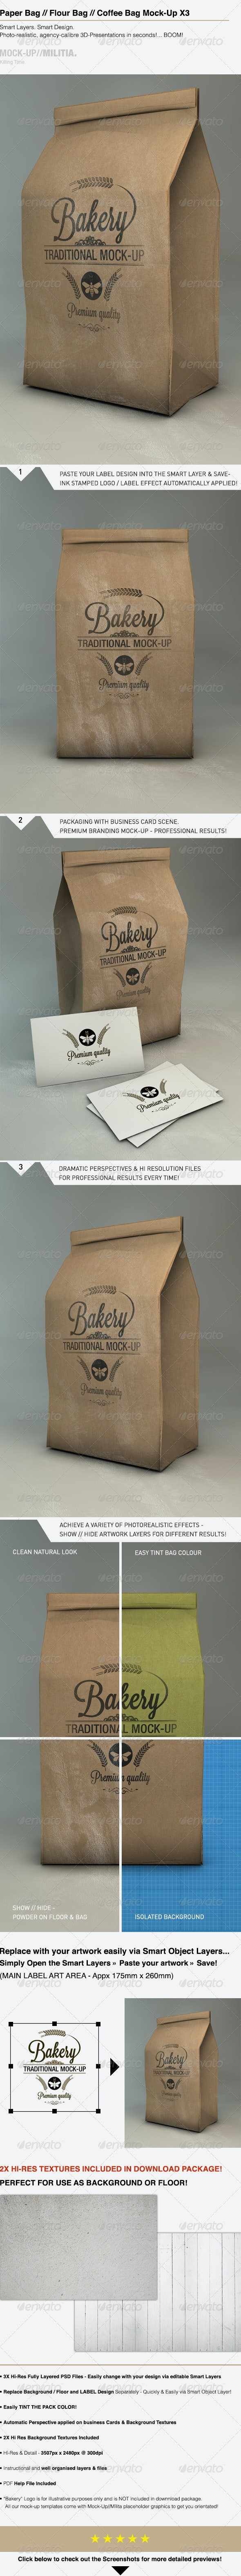 Paper Bag Mock-Up | Flour - Coffee Bag Mock-Up - Miscellaneous Packaging